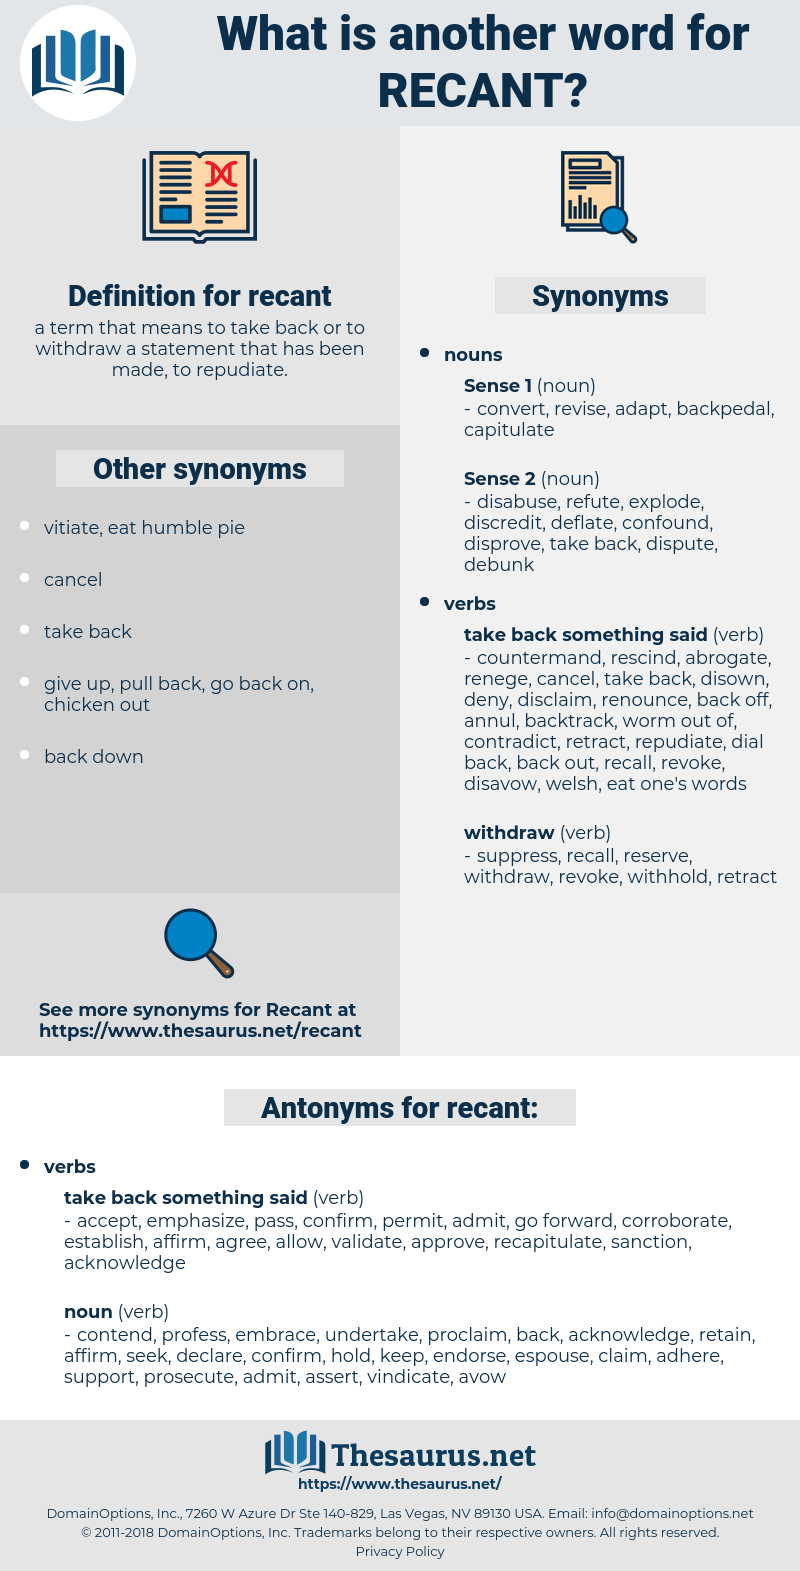 recant, synonym recant, another word for recant, words like recant, thesaurus recant